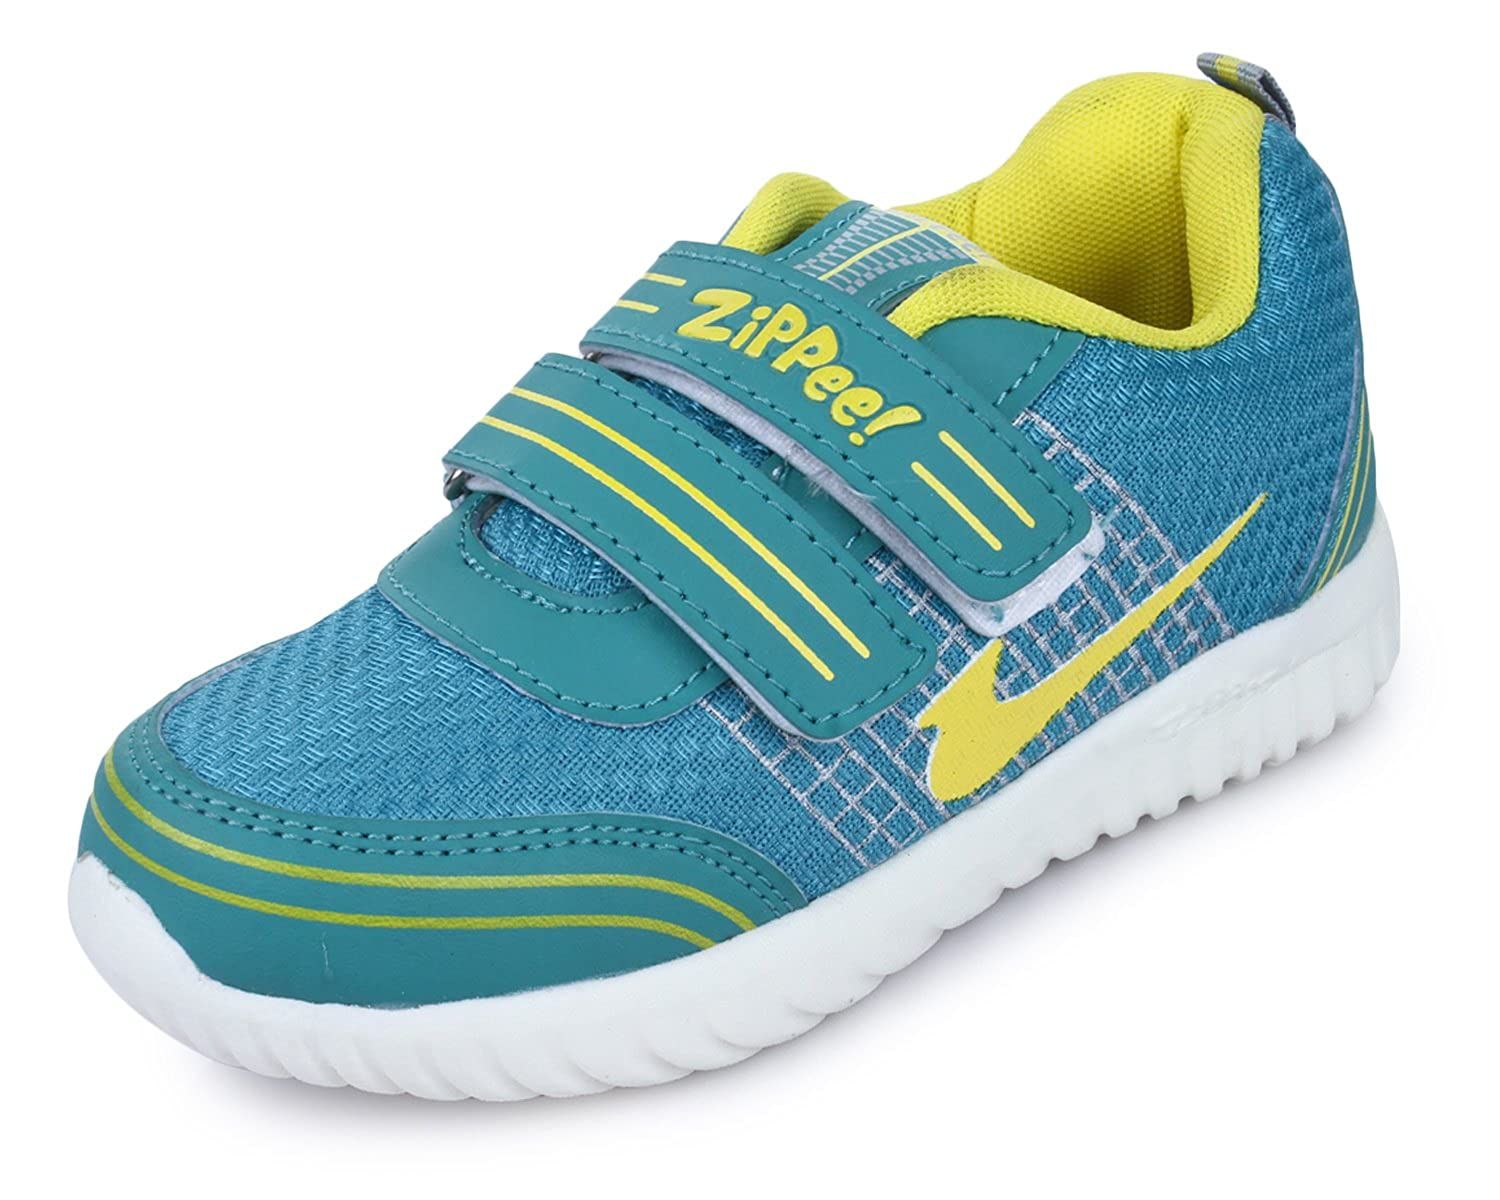 4e83202b7e42 TRASE Zippee-HY Sports Shoes for Boys-Girls (for Age  2-12 Years)  Buy  Online at Low Prices in India - Amazon.in